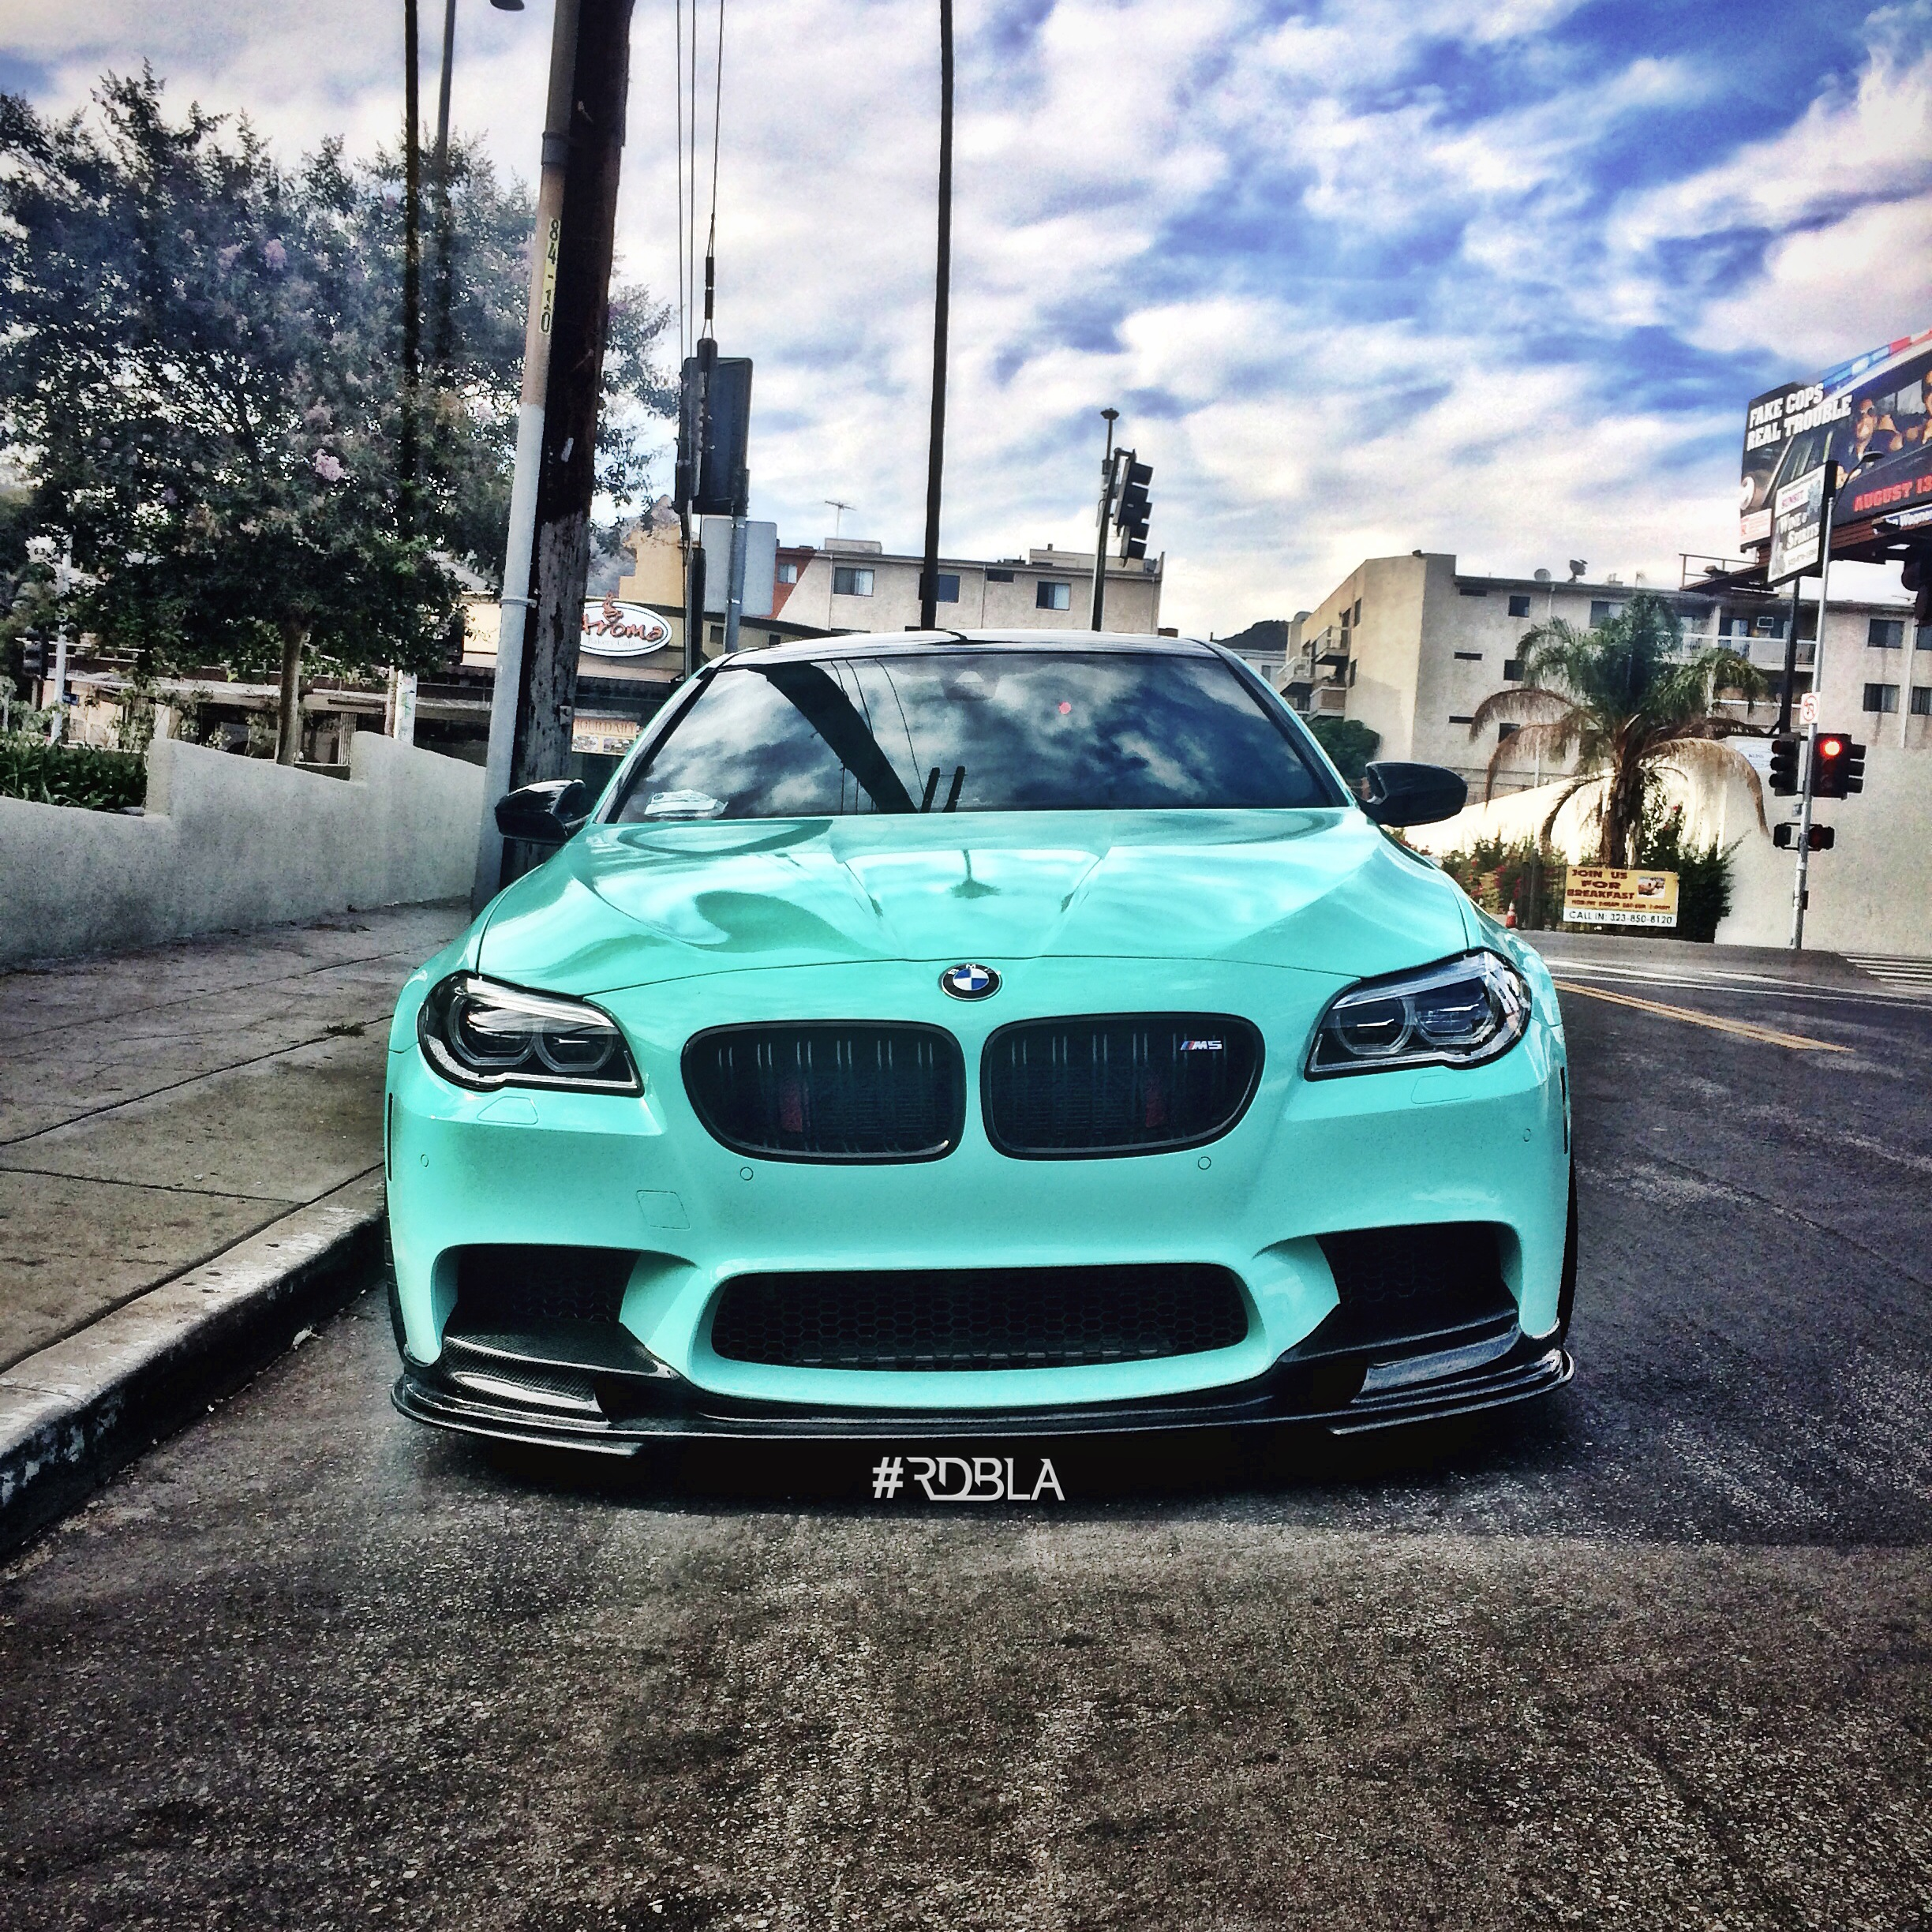 RDB LA Squeezed 660 HP from this Wicked BMW M5 - autoevolution